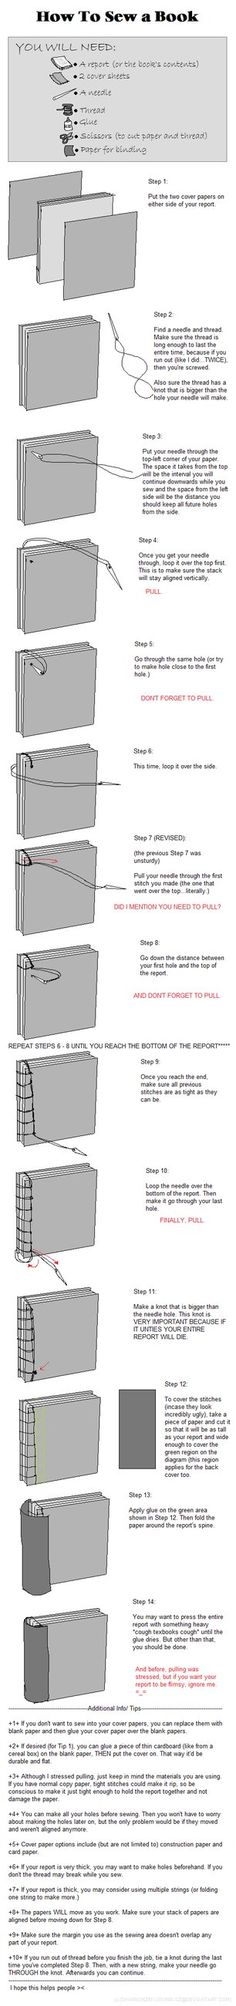 C??mo coser un libro - How to sew a book. DeviantART: More Like uber simple book binding by serealis